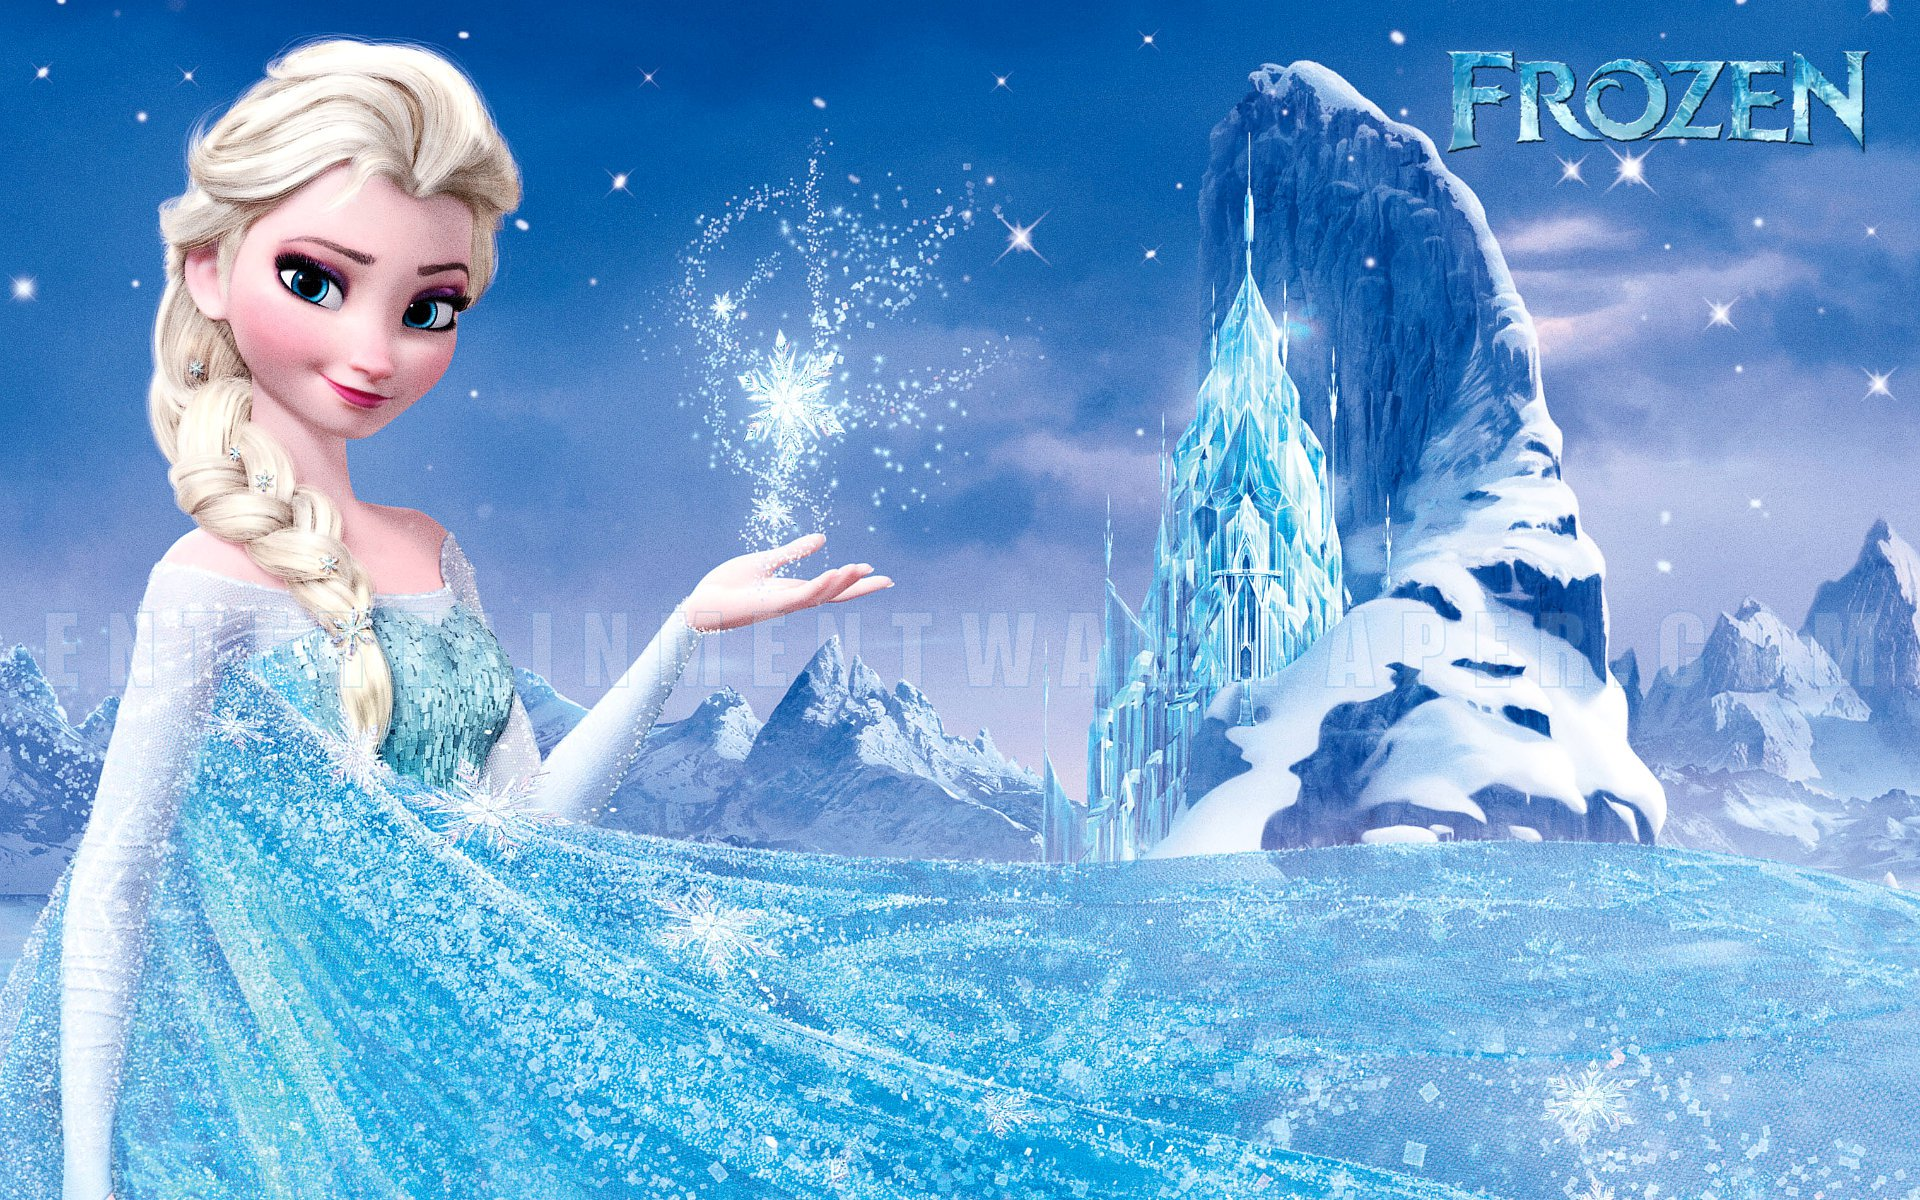 Frozen Wallpapers Movie HQ Frozen Pictures